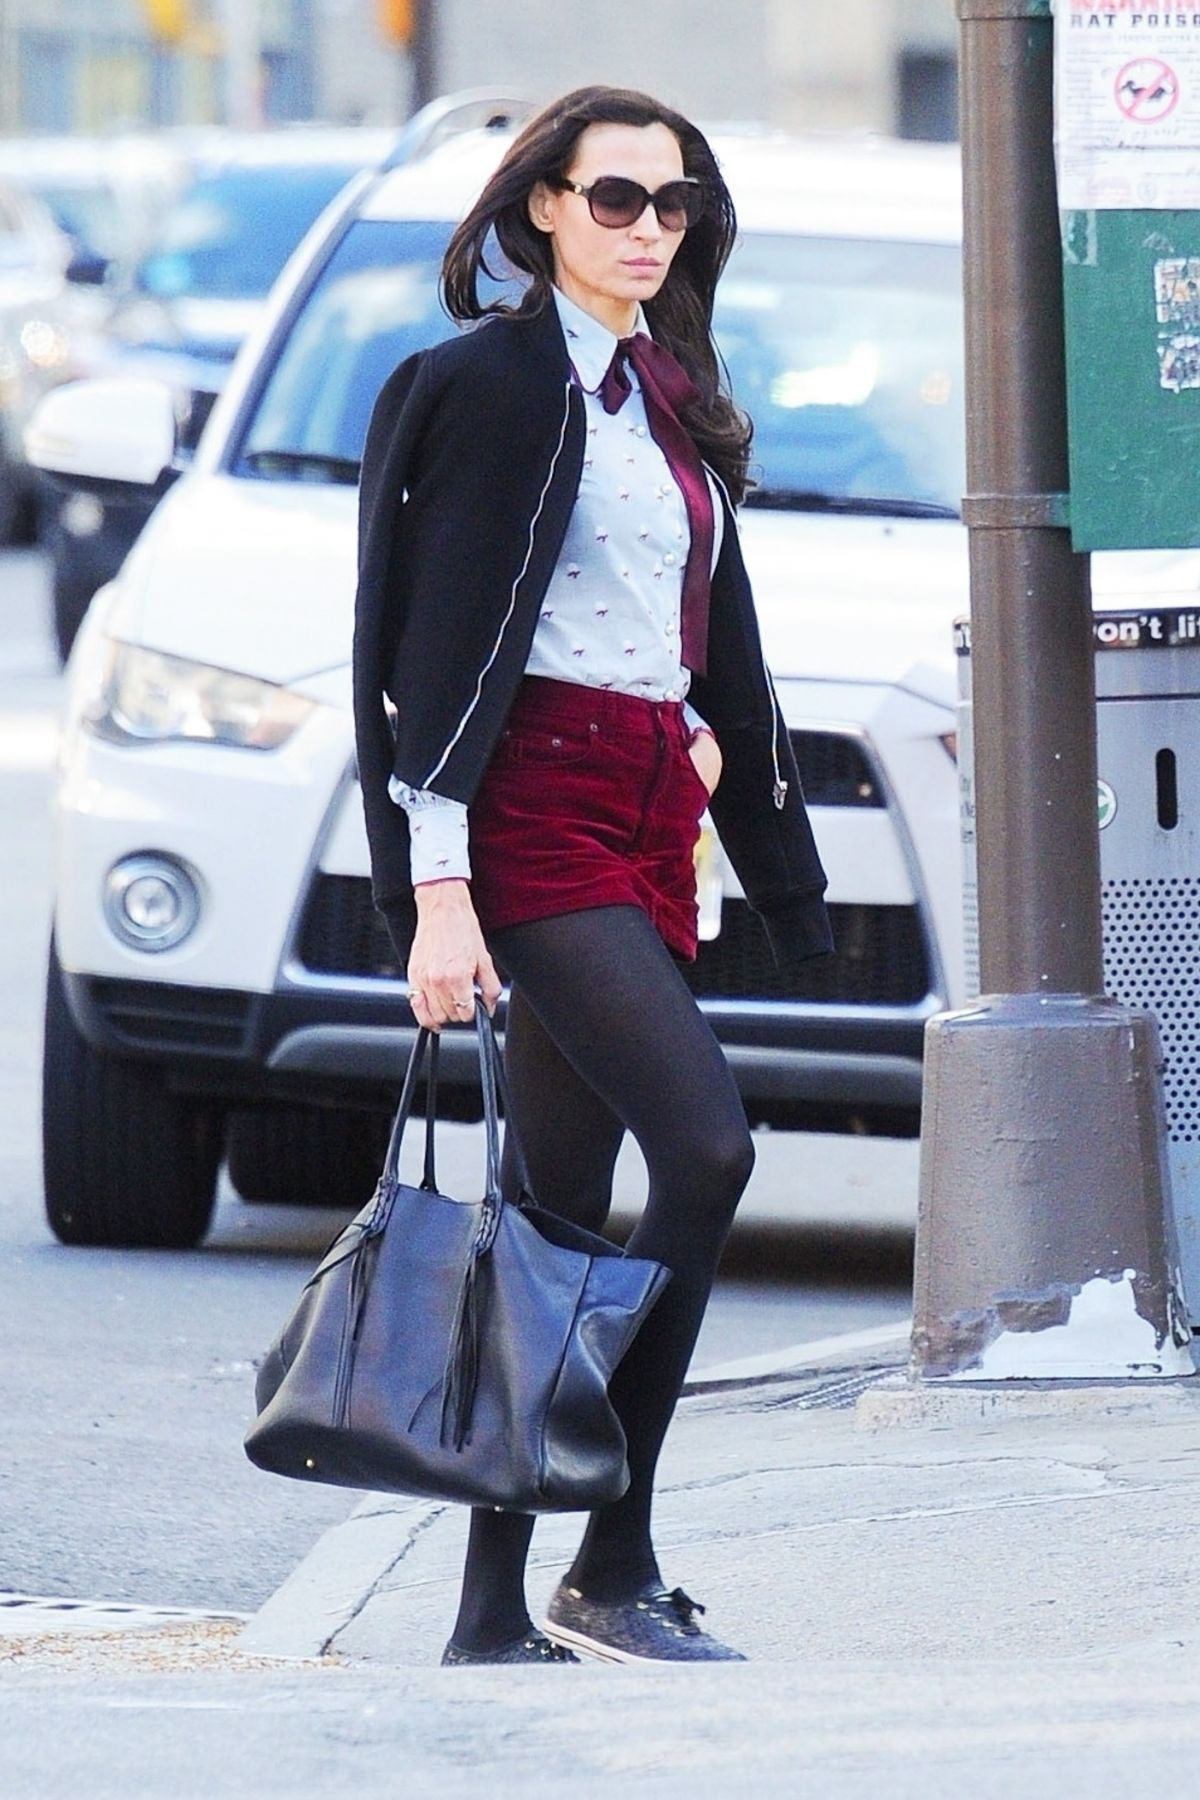 famke janssen out and about in new york 04 15 2019. Black Bedroom Furniture Sets. Home Design Ideas